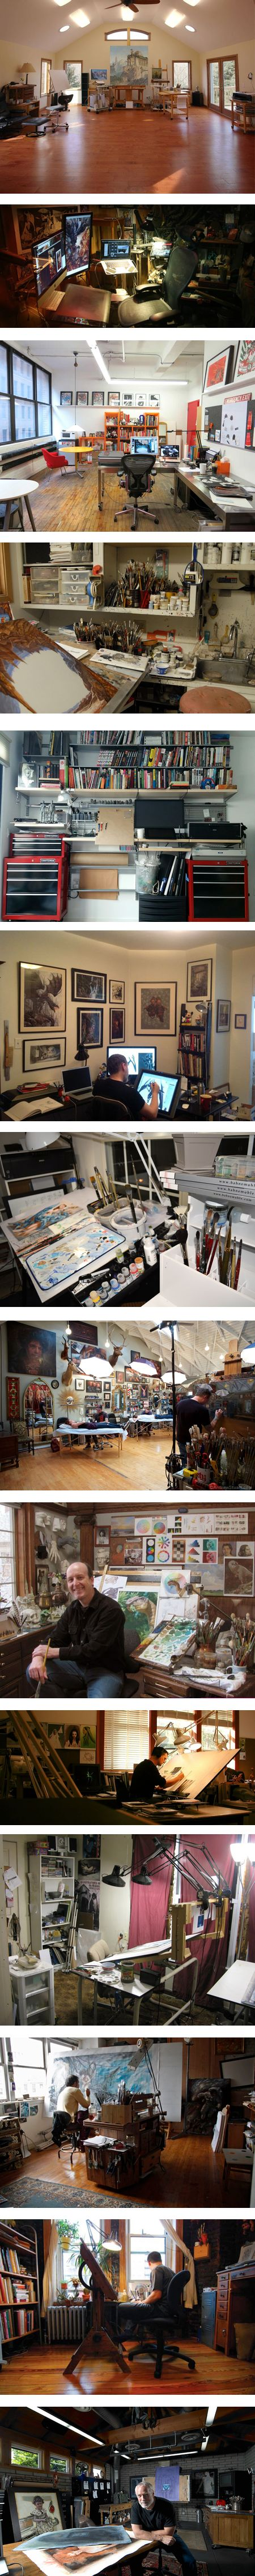 Artists studios: Tom Kidd, Andrew